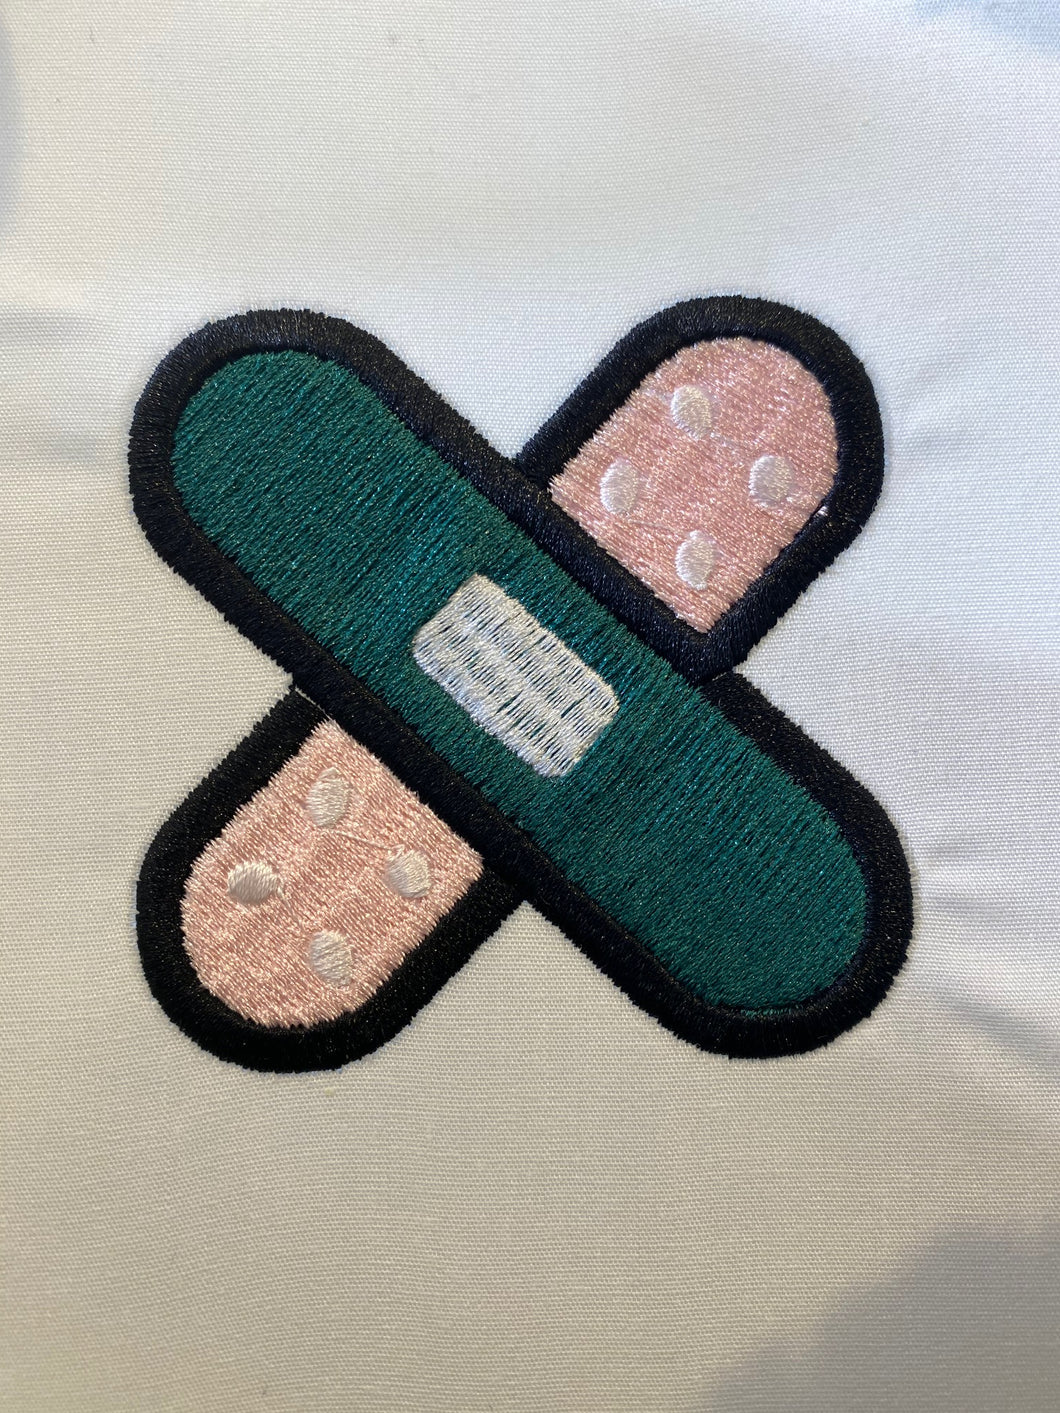 Bandaid Embroidery Design